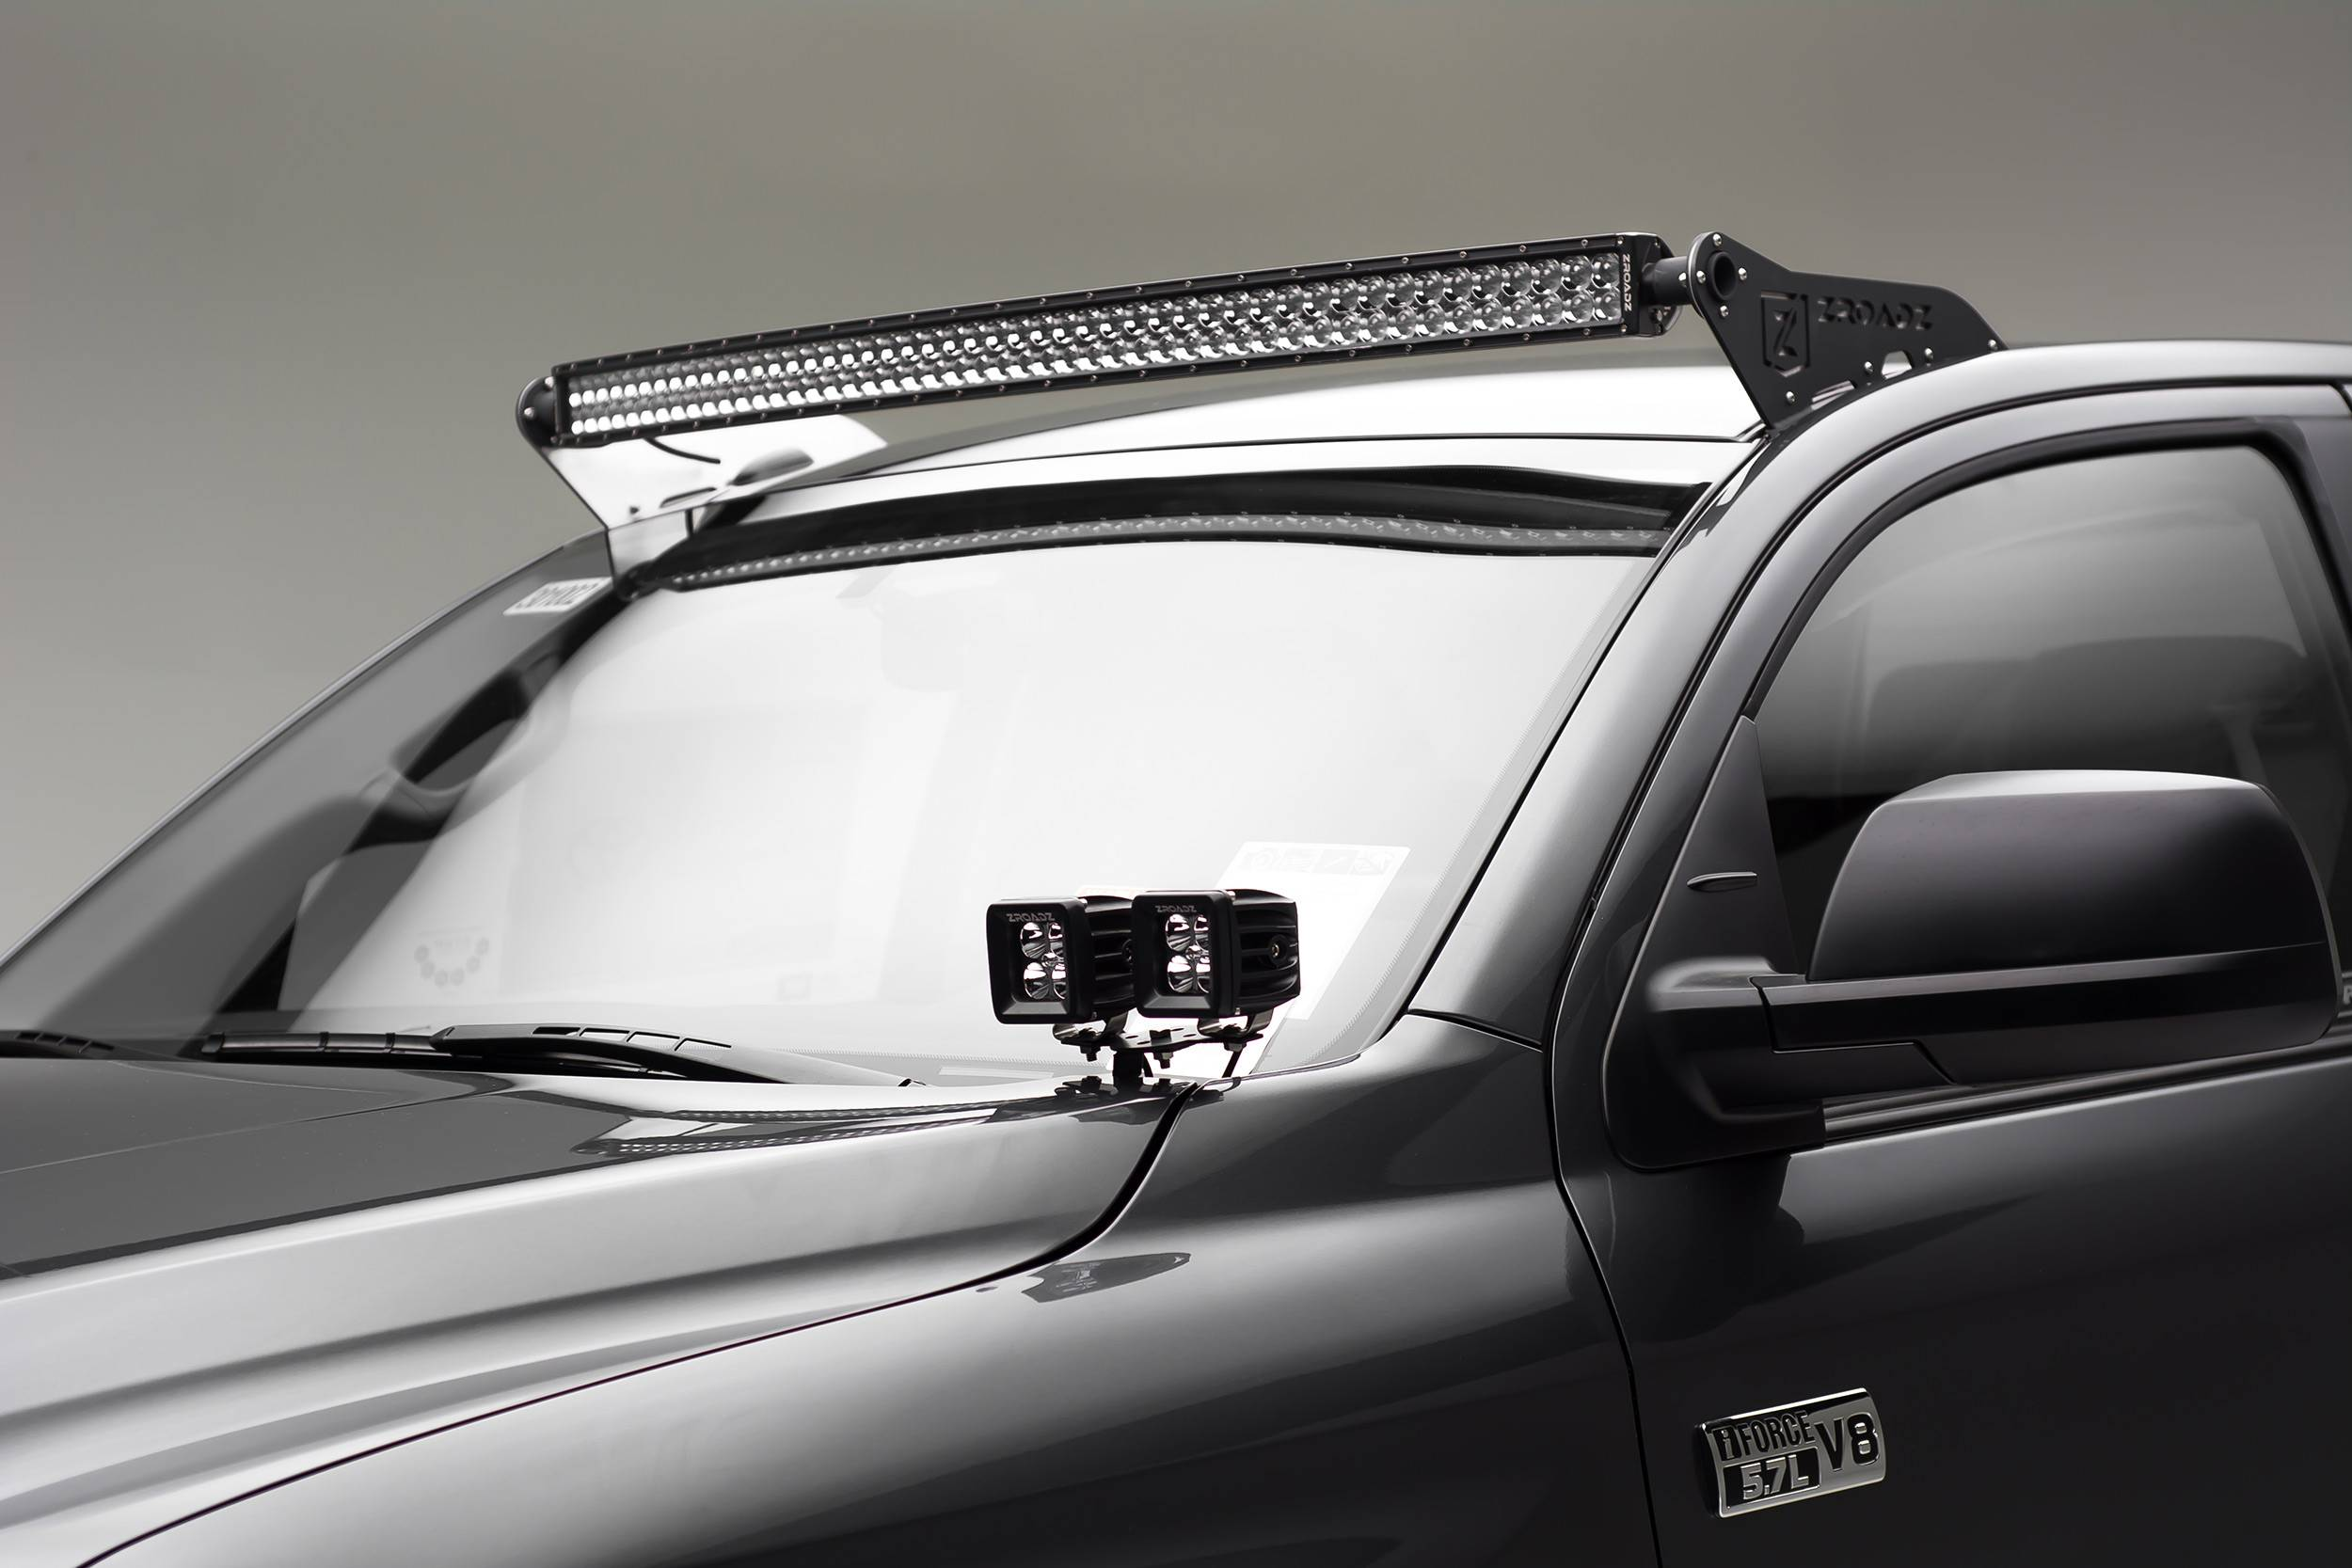 2007-2019 Toyota Tundra Front Roof LED Bracket to mount (1) 50 Inch Curved LED Light Bar - PN #Z339641